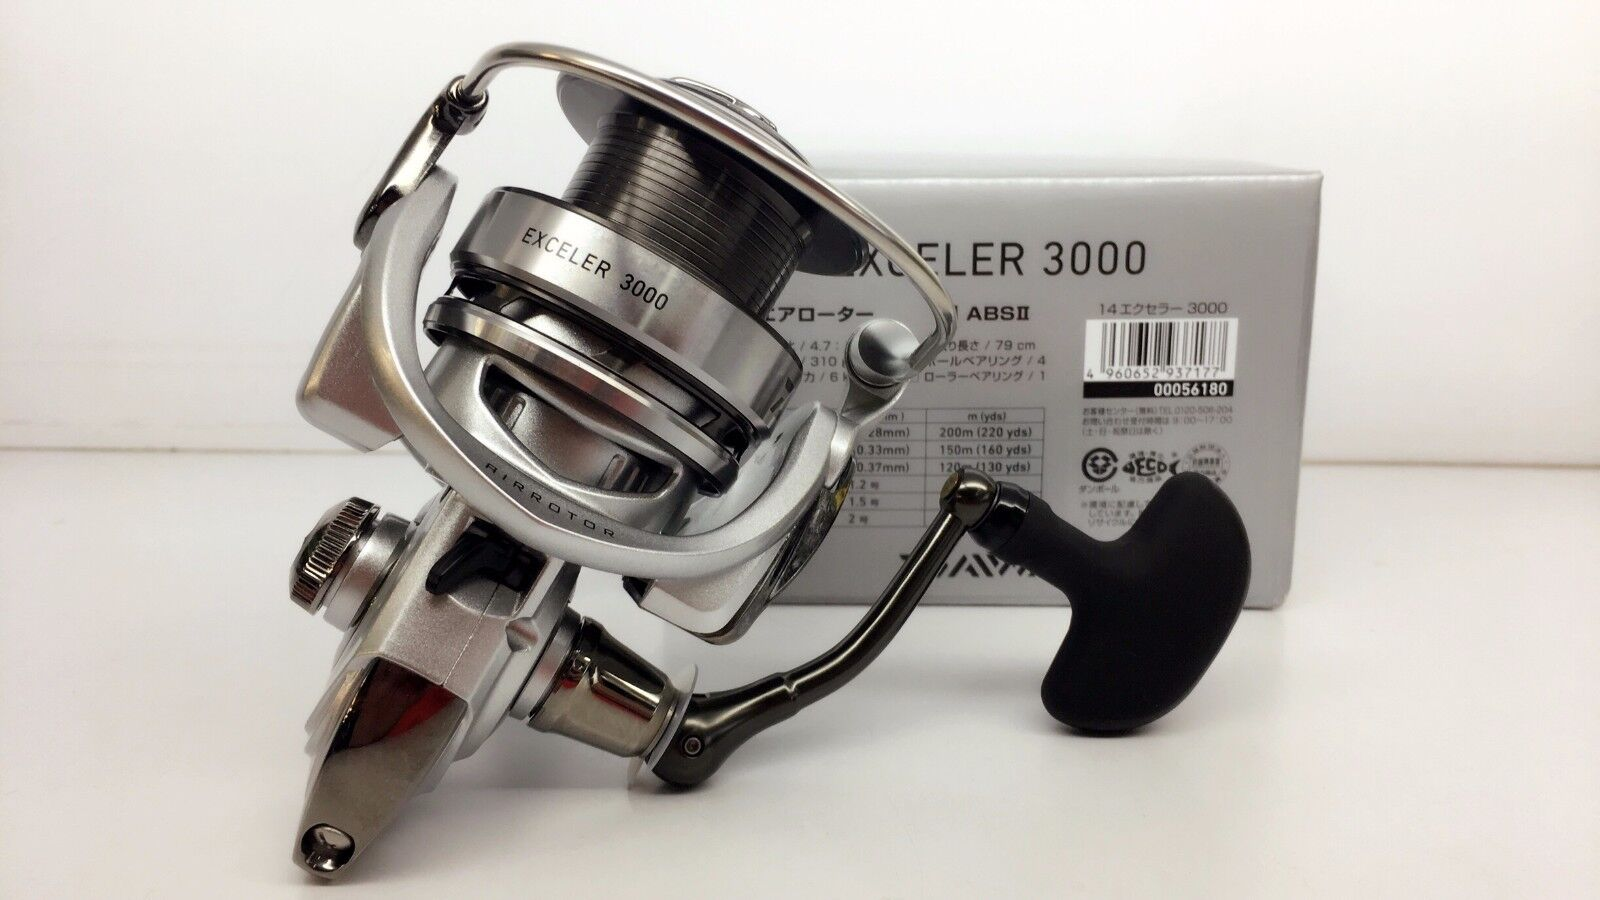 DAIWA Exceler 3000 Spinning Reel 3000 Fedex Priority shipping 2days to Usa